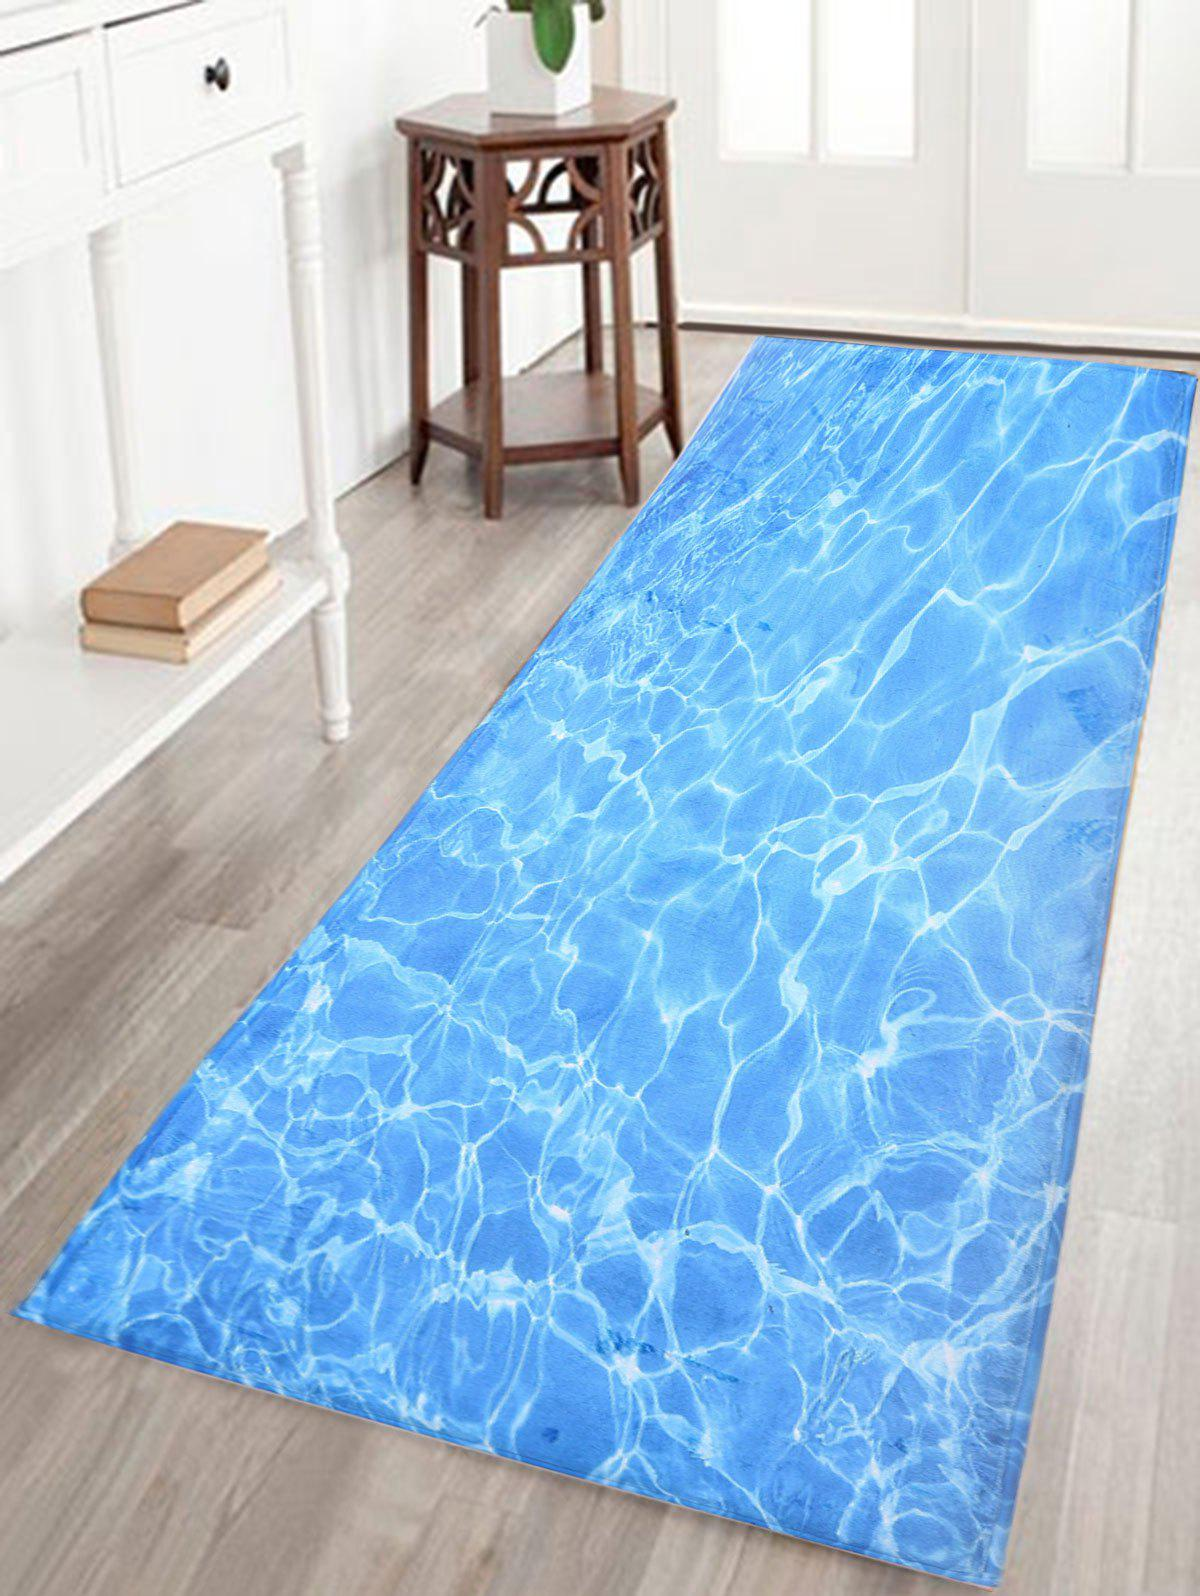 2019 Water Wave Print Bathroom Skid Resistant Bathroom Rug